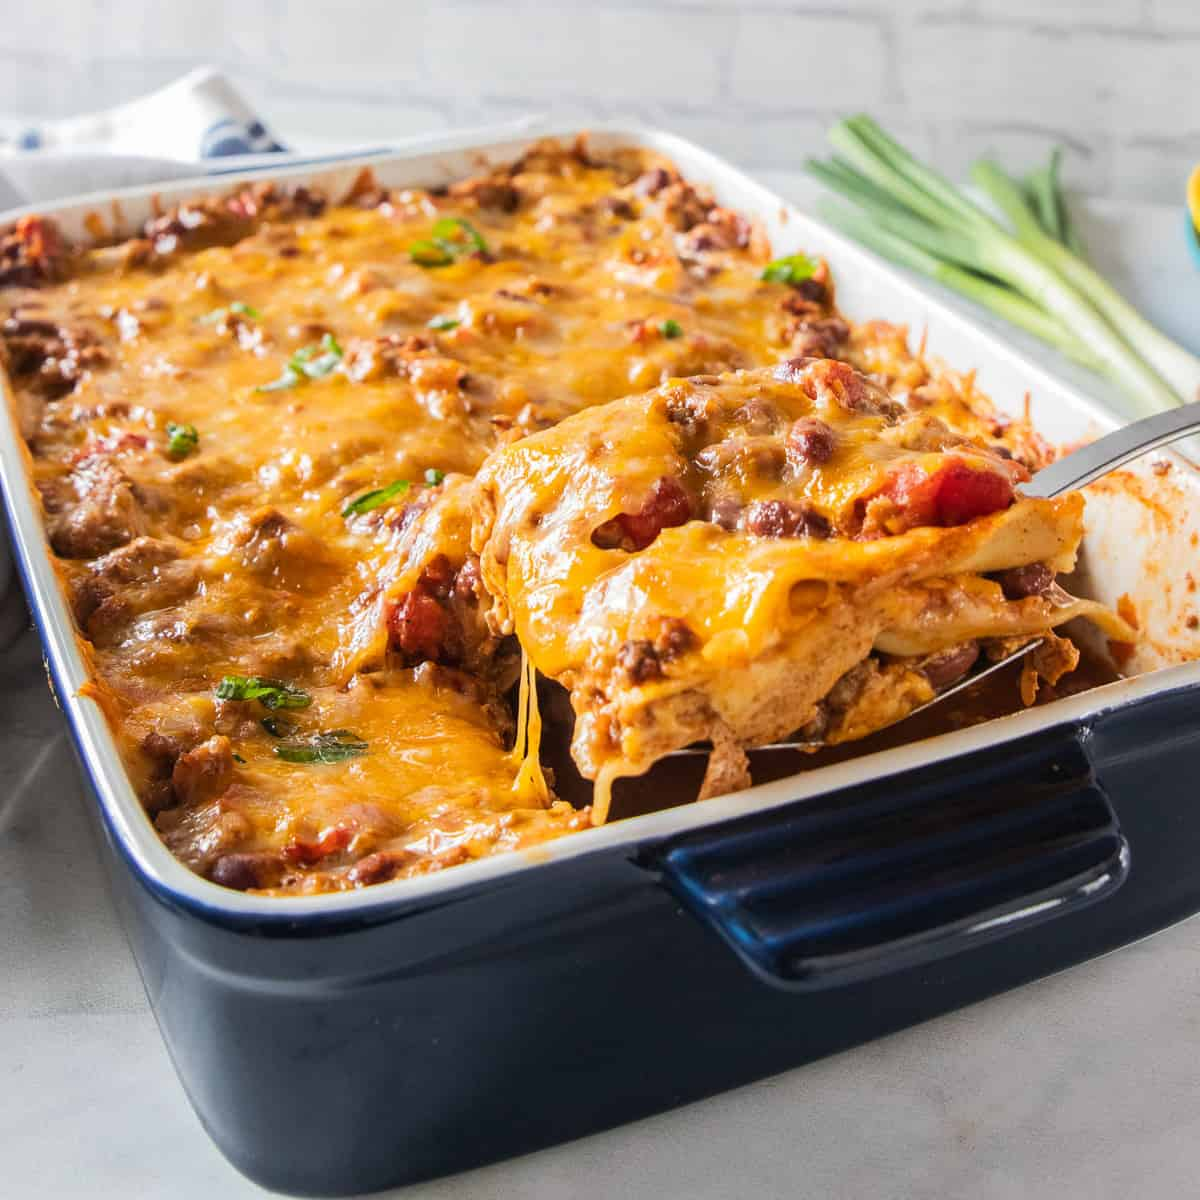 Chili lasagna being scooped from a baking dish.